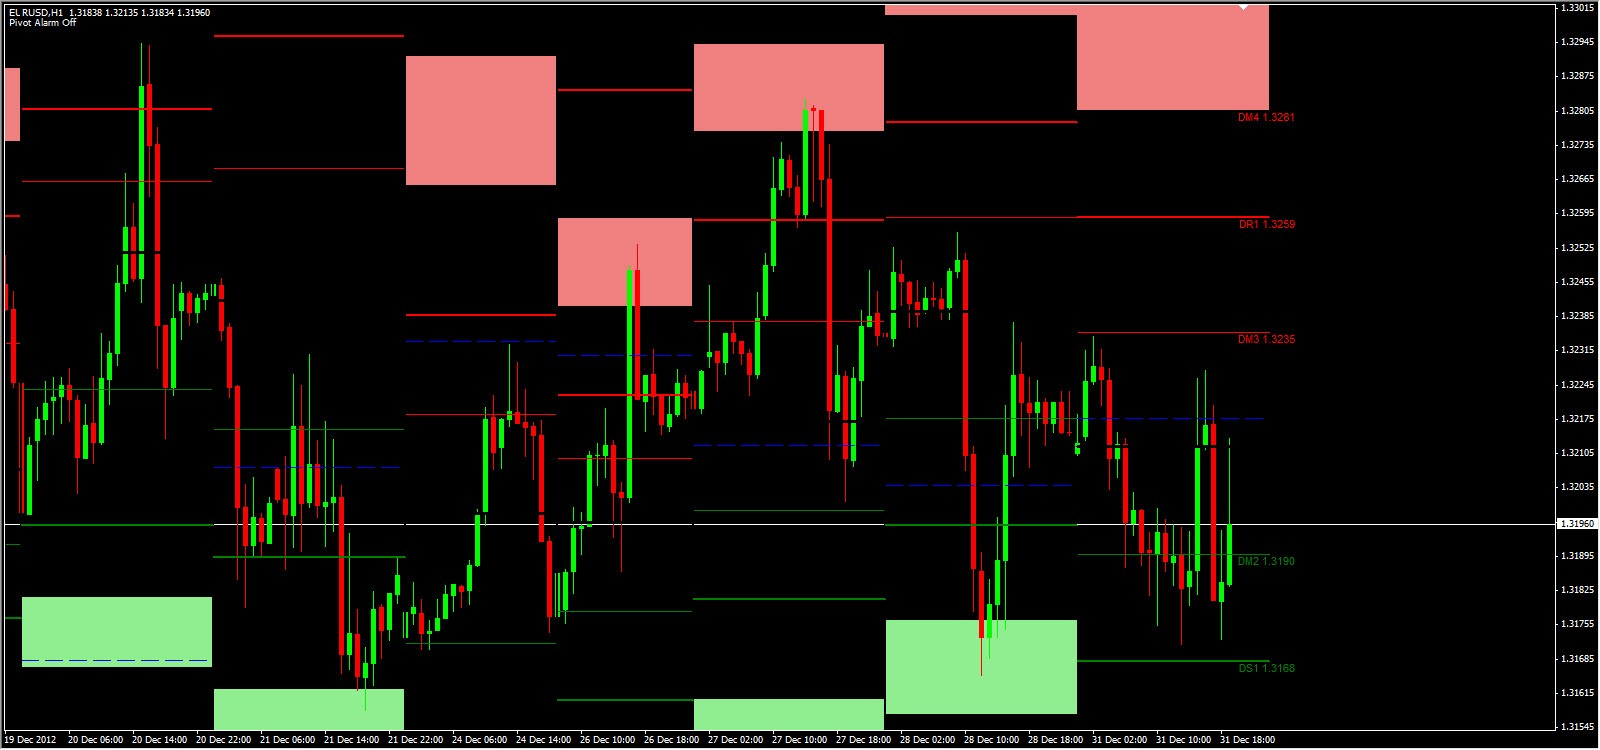 Pivot point trading forex 15 mnt